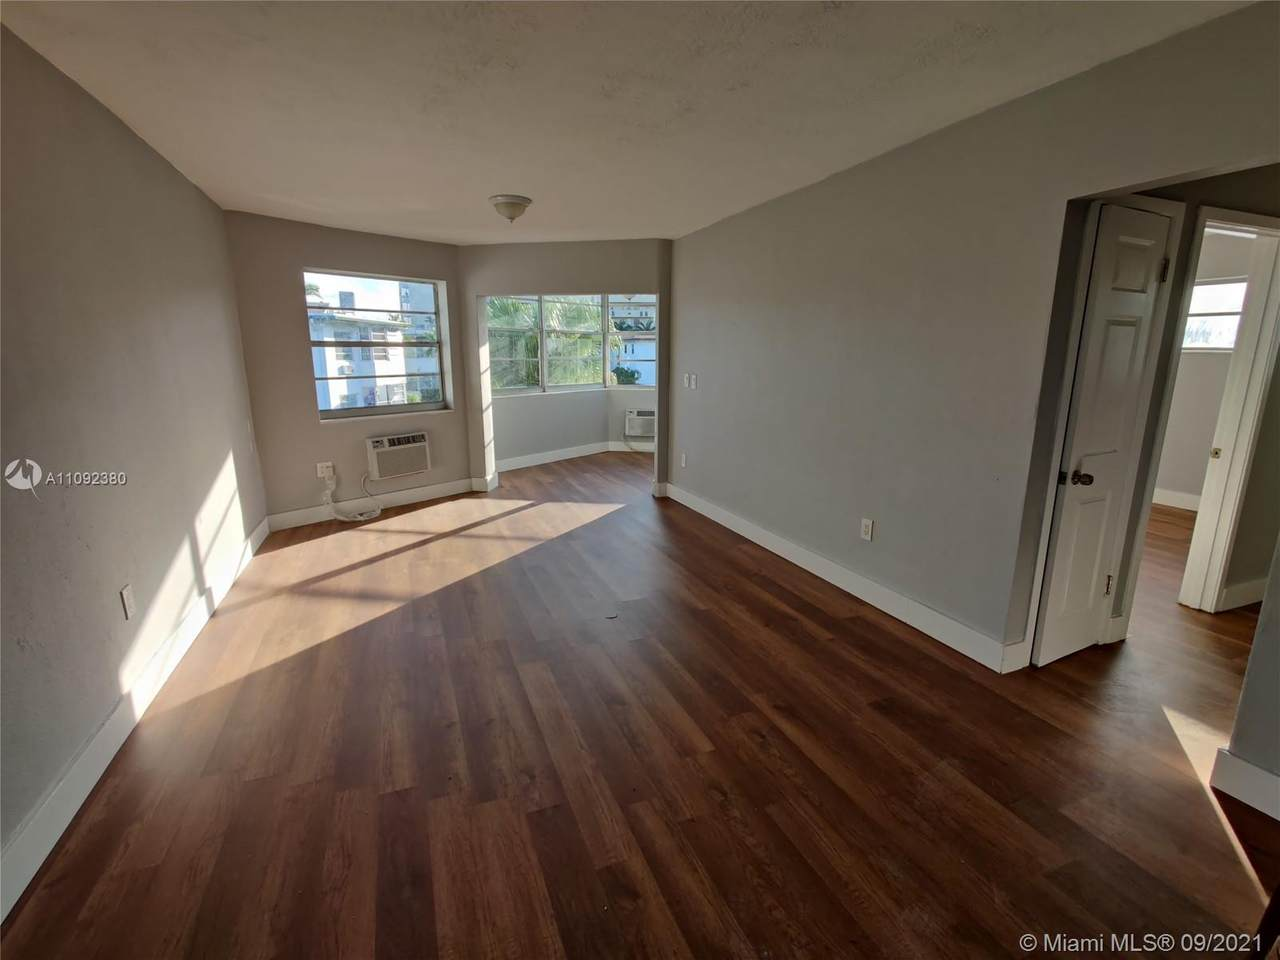 18780 18th Ave - Photo 1